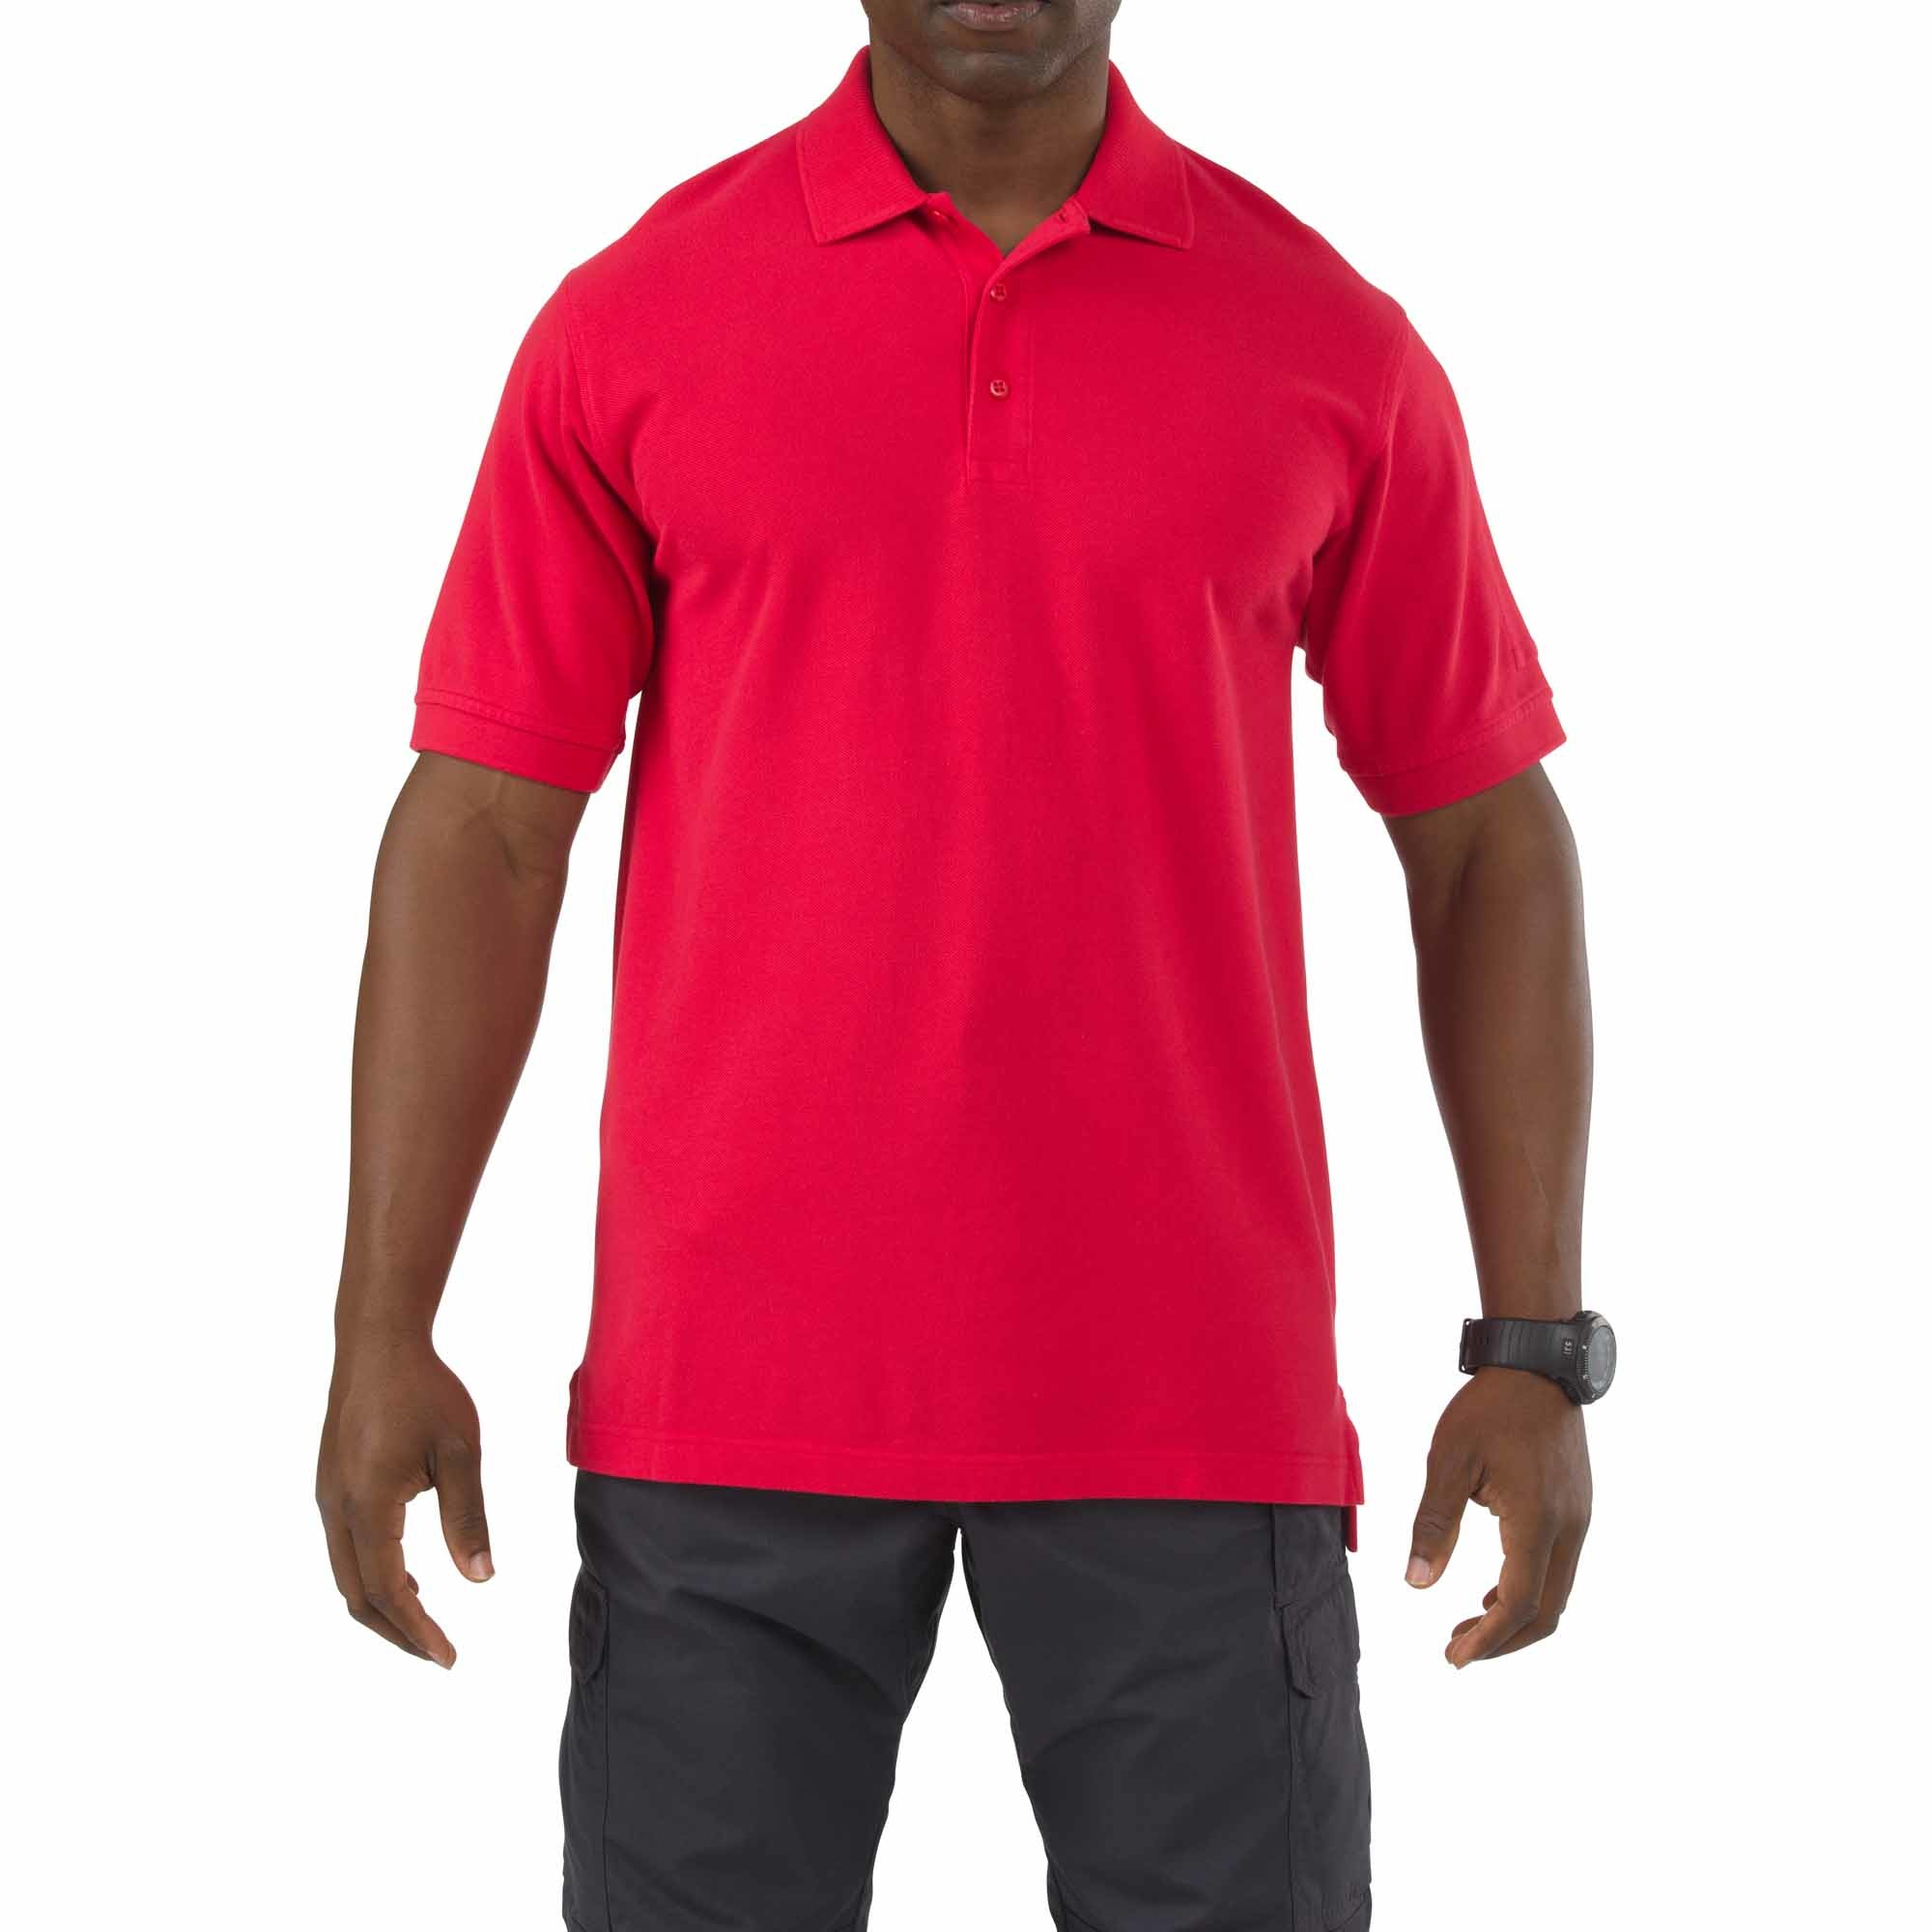 5.11 Professional Polo S/S